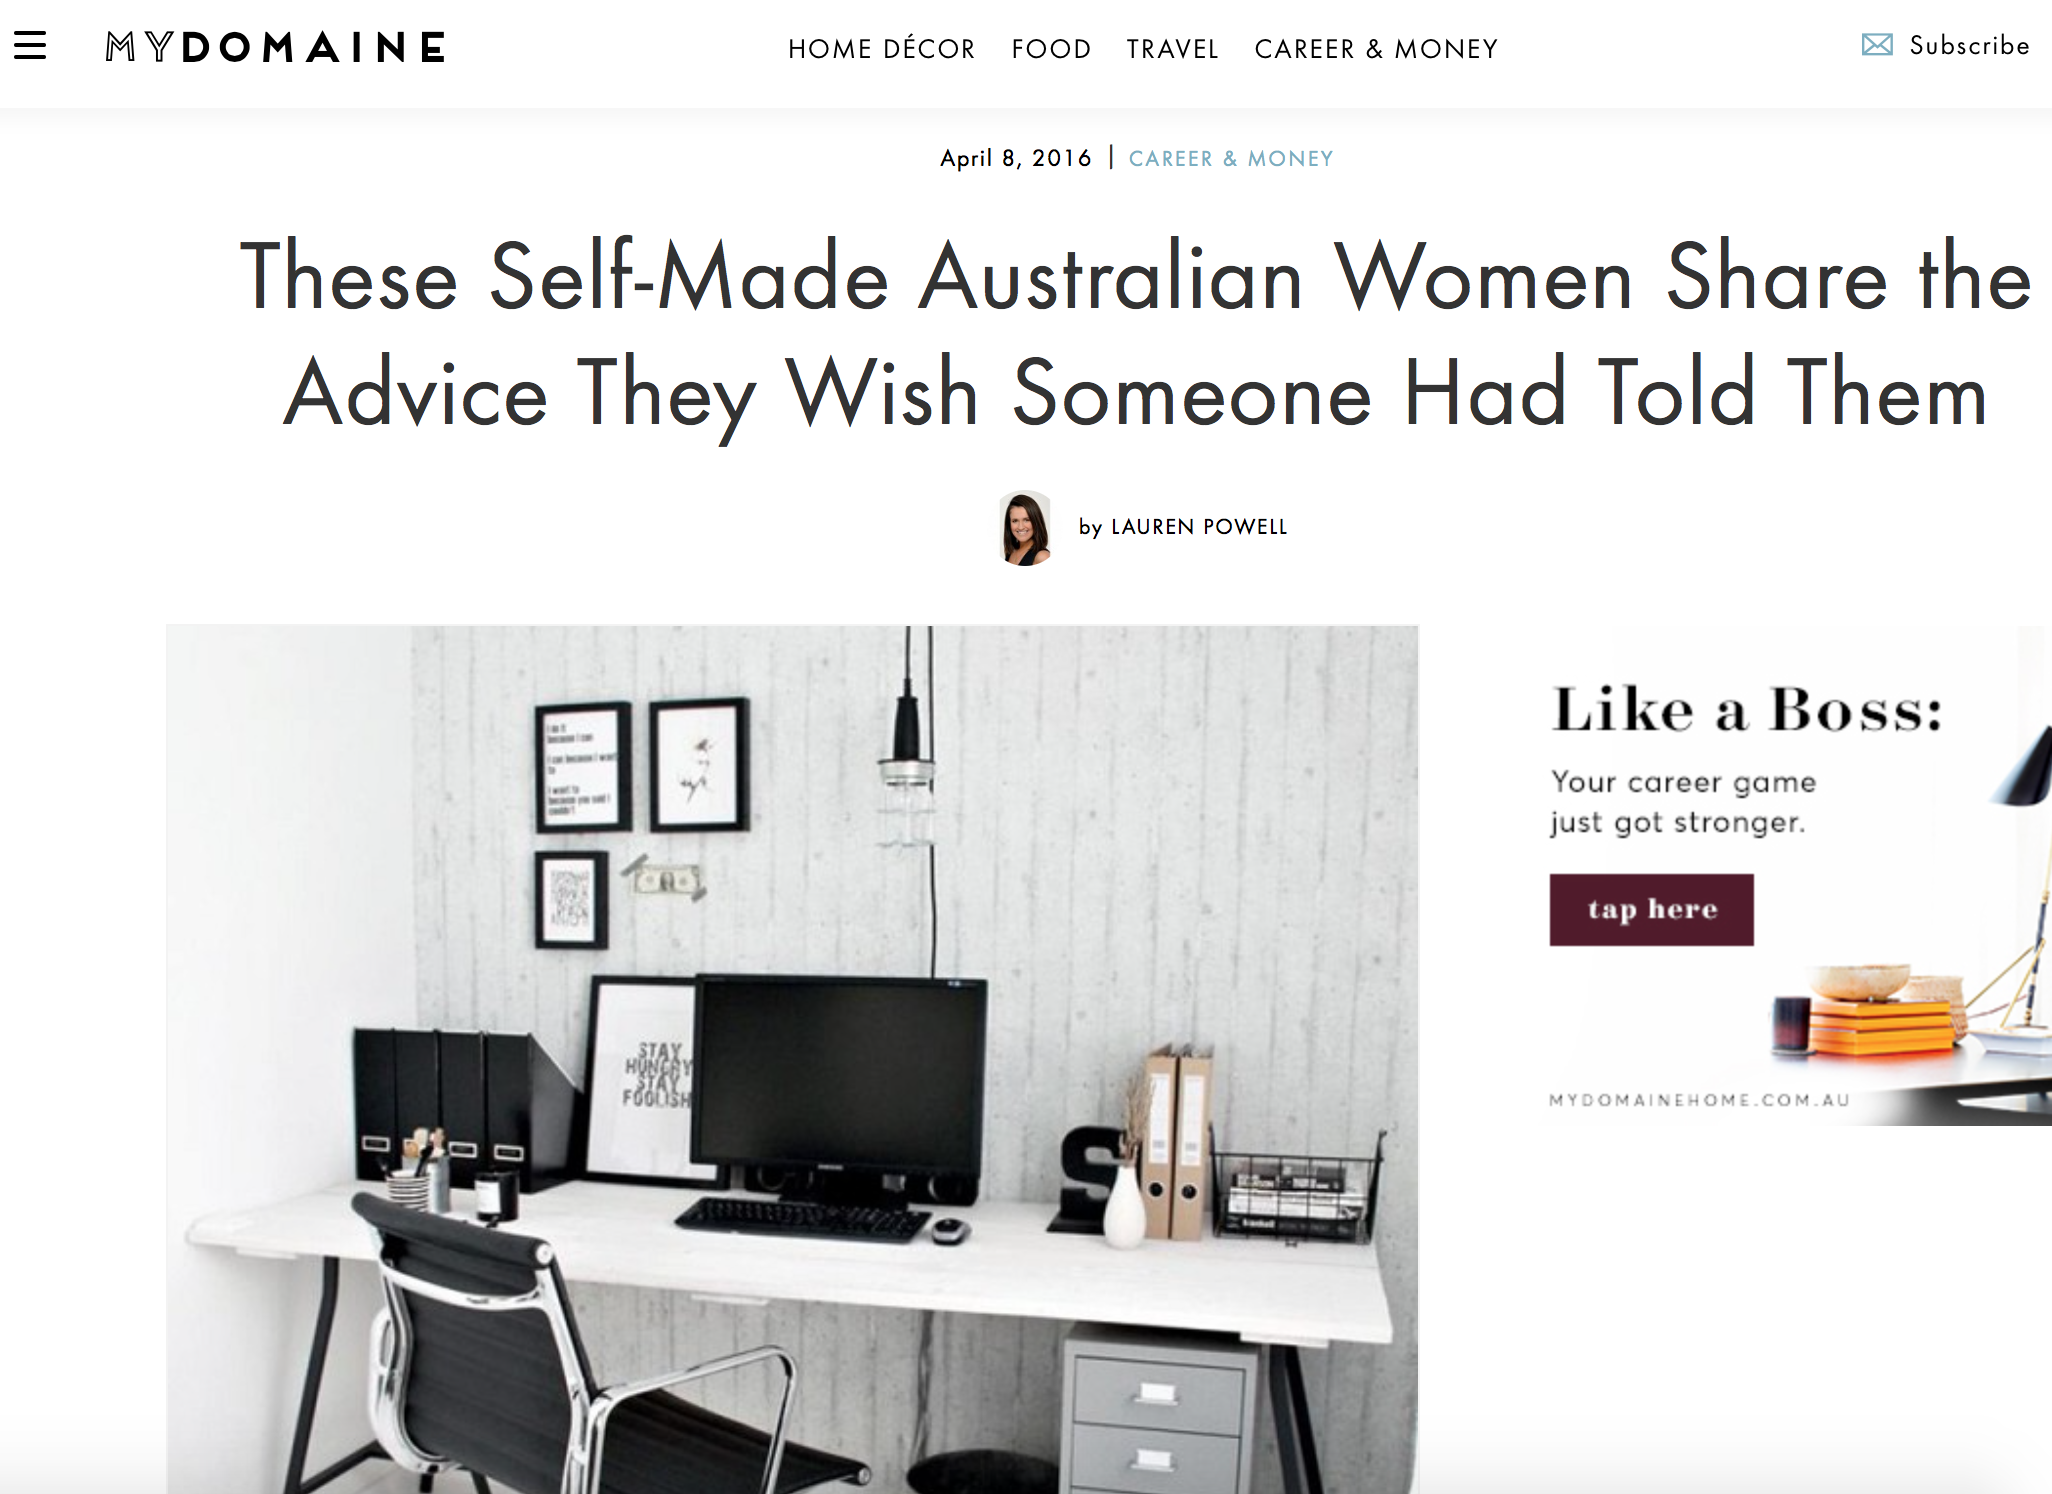 http://www.mydomainehome.com.au/entrepreneurs-advice-to-younger-selves